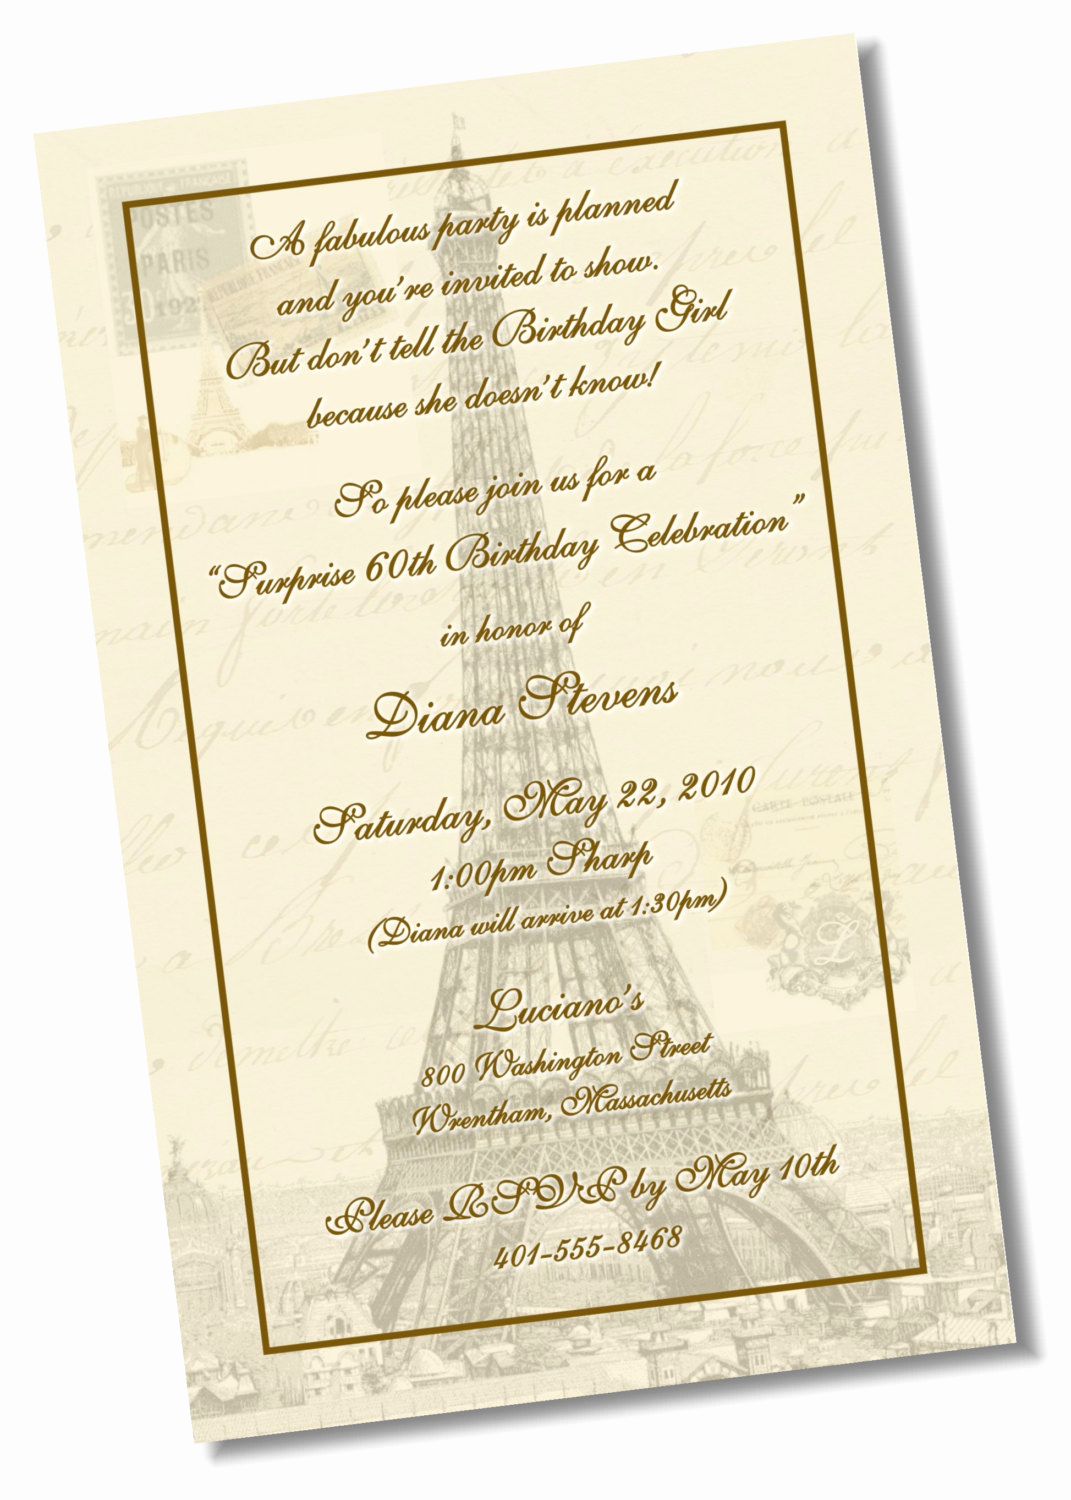 Paris themed Invitation Template Unique 60th Birthday Paris theme Invitation Diy Printable